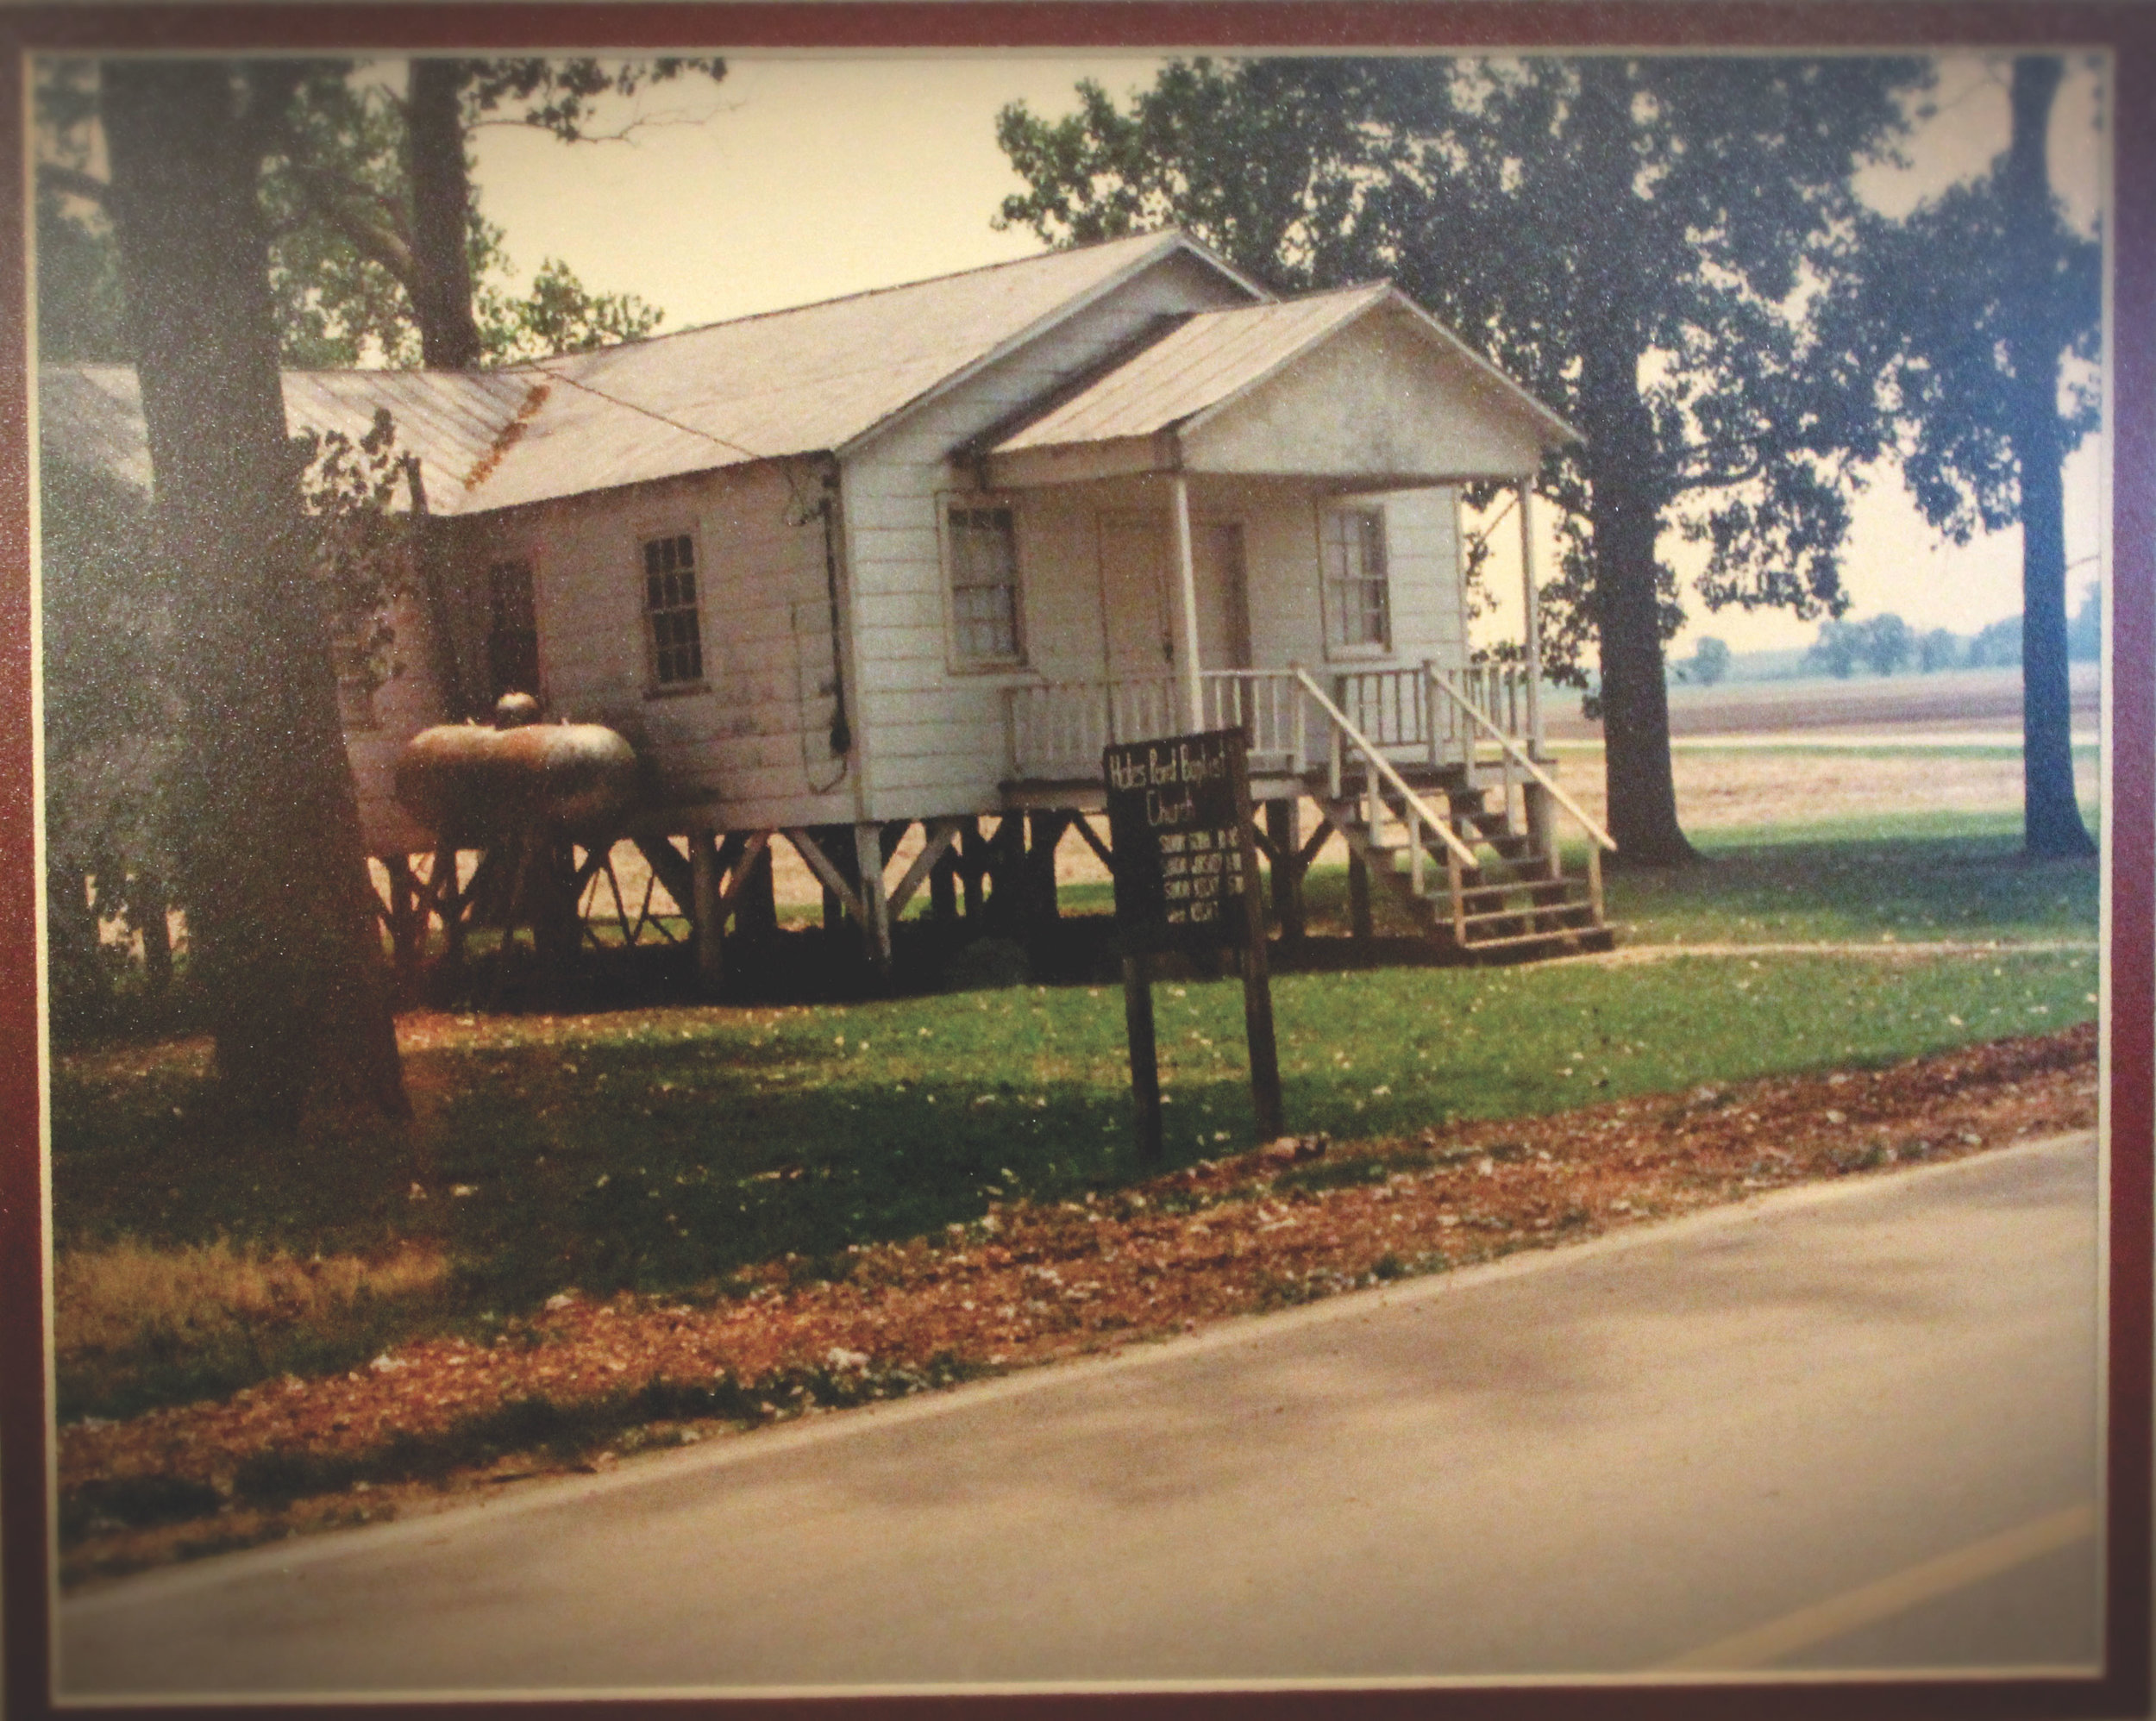 A shot of the original Hales Point Baptist church standing on stilts, later to be crafted into the Just Divine Tea Roo.